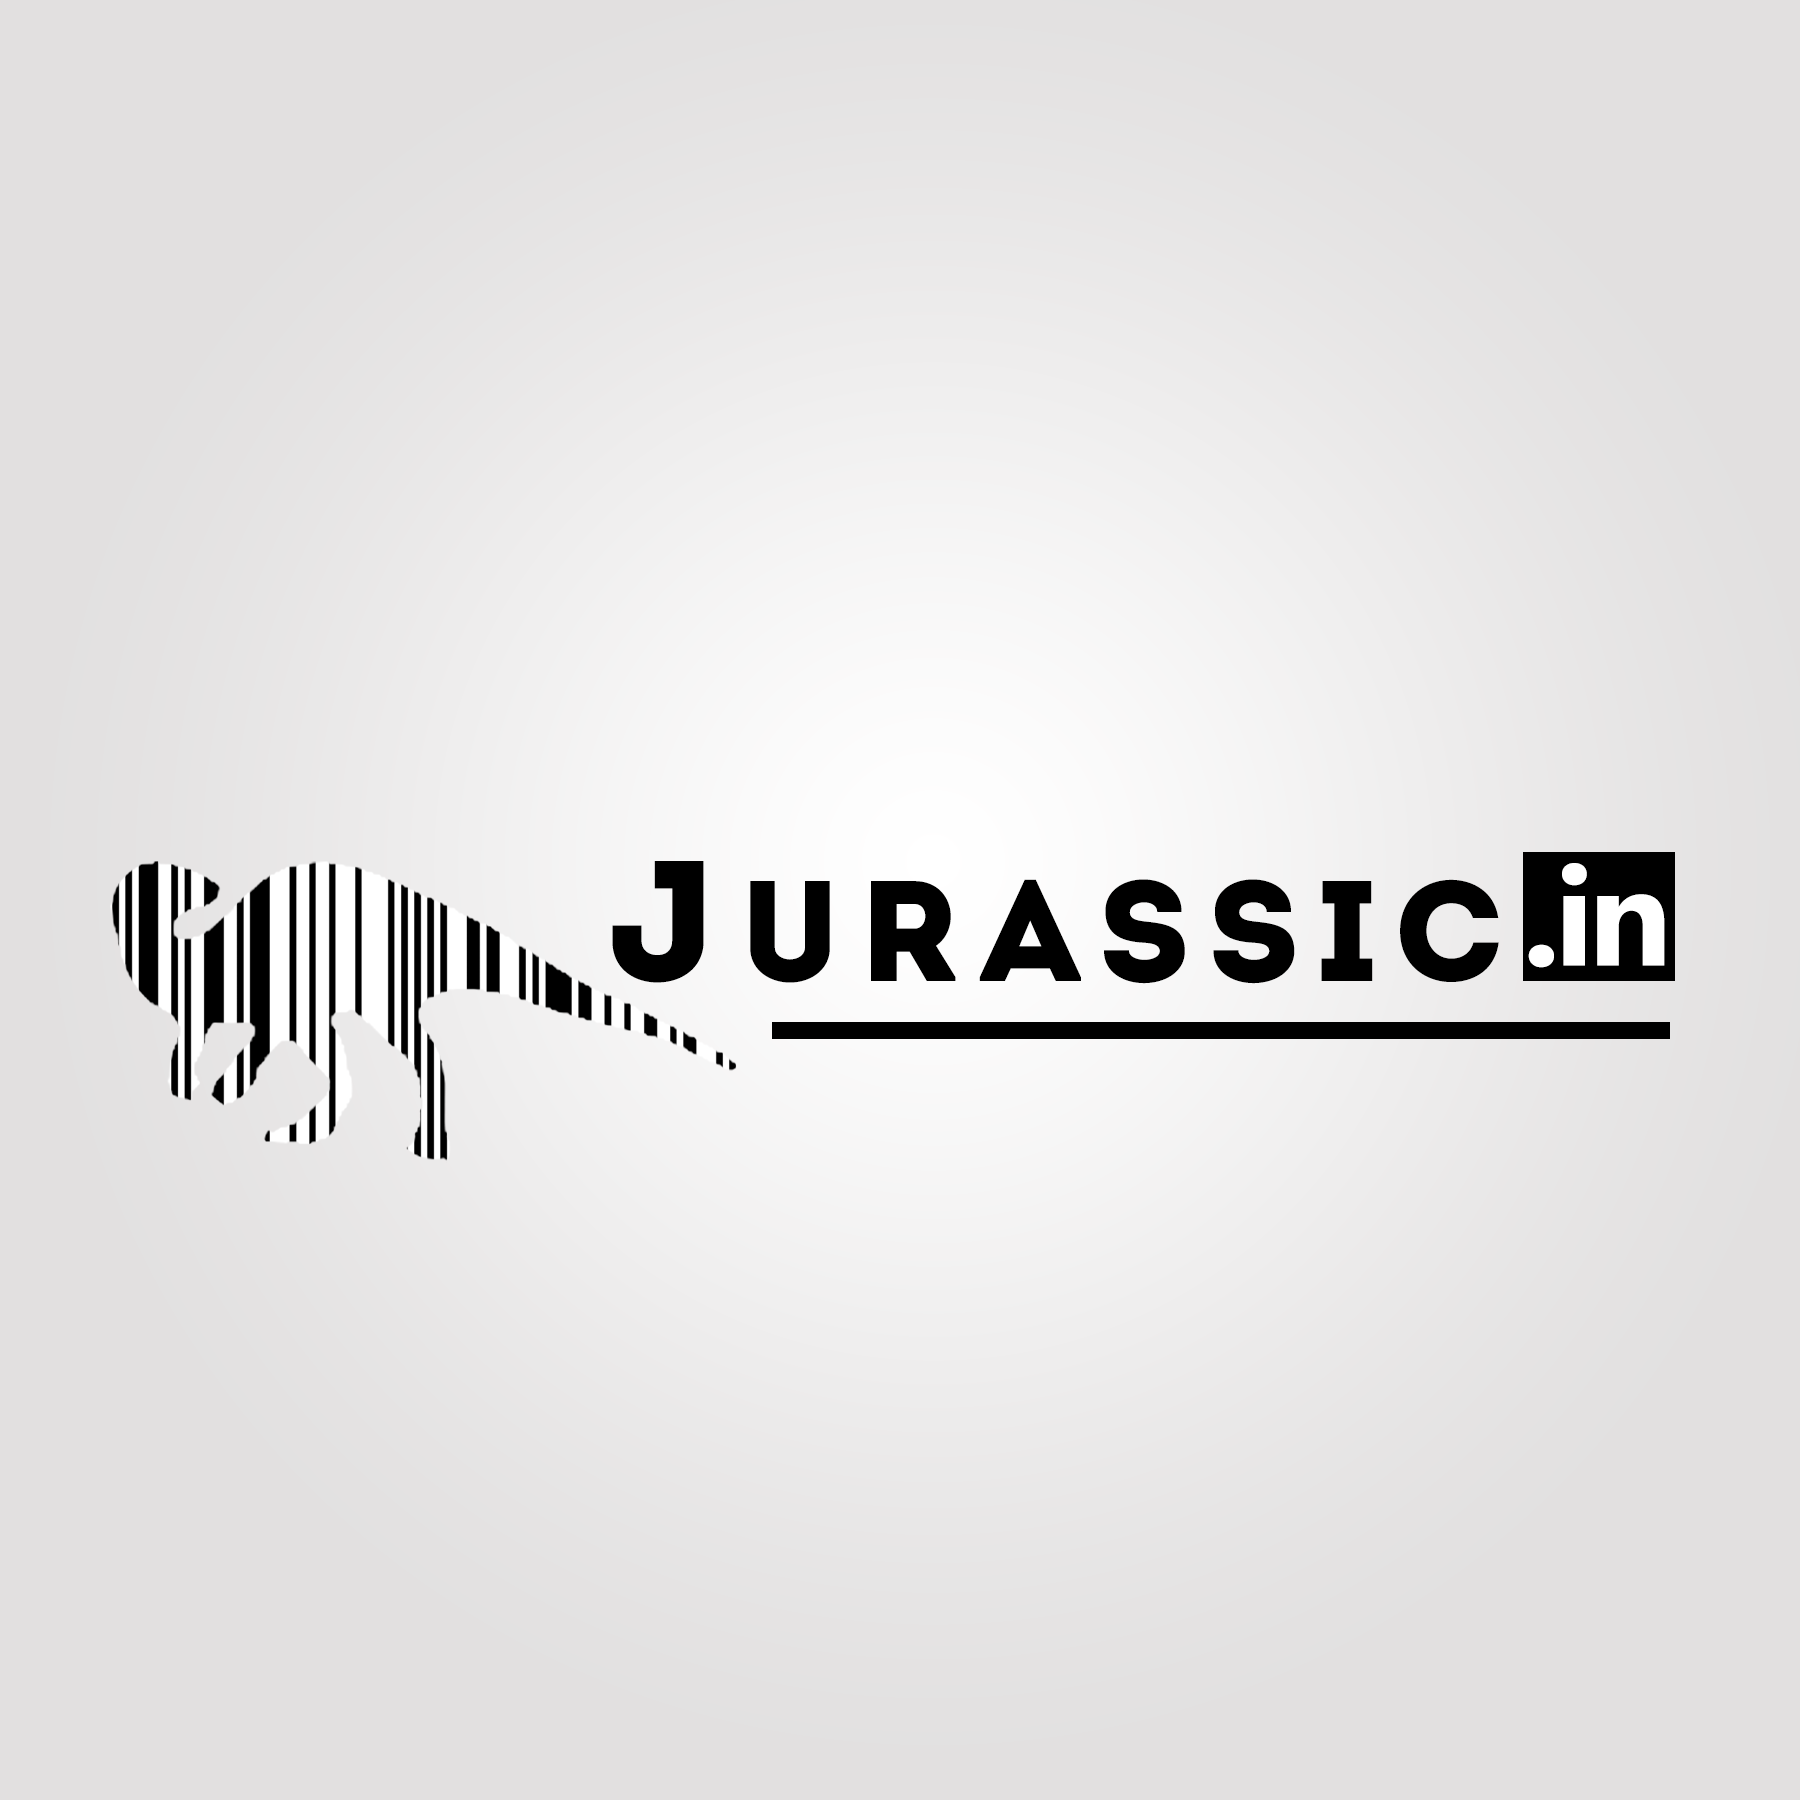 Logo Design by Lemuel Arvin Tanzo - Entry No. 16 in the Logo Design Contest Unique Logo Design Wanted for jurassic.in.